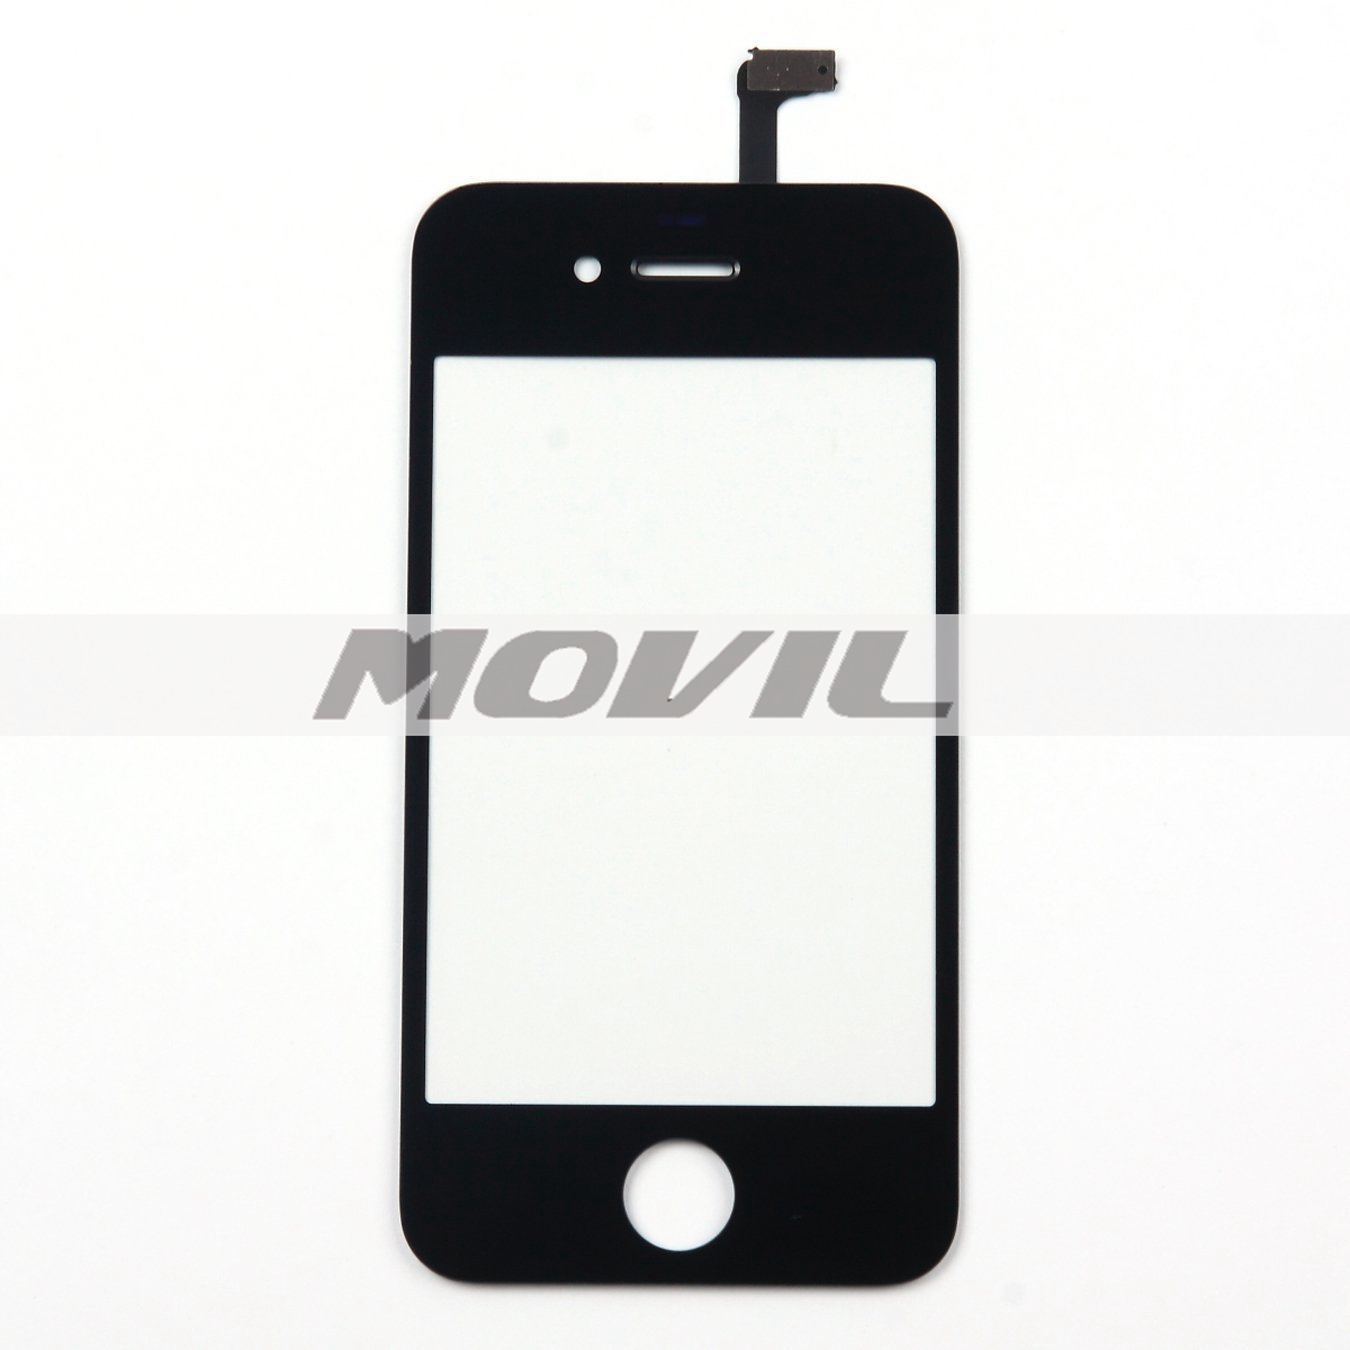 Front Glass Touch Screen Digitizer Replacement for iPhone 4 4G 4S (Black)